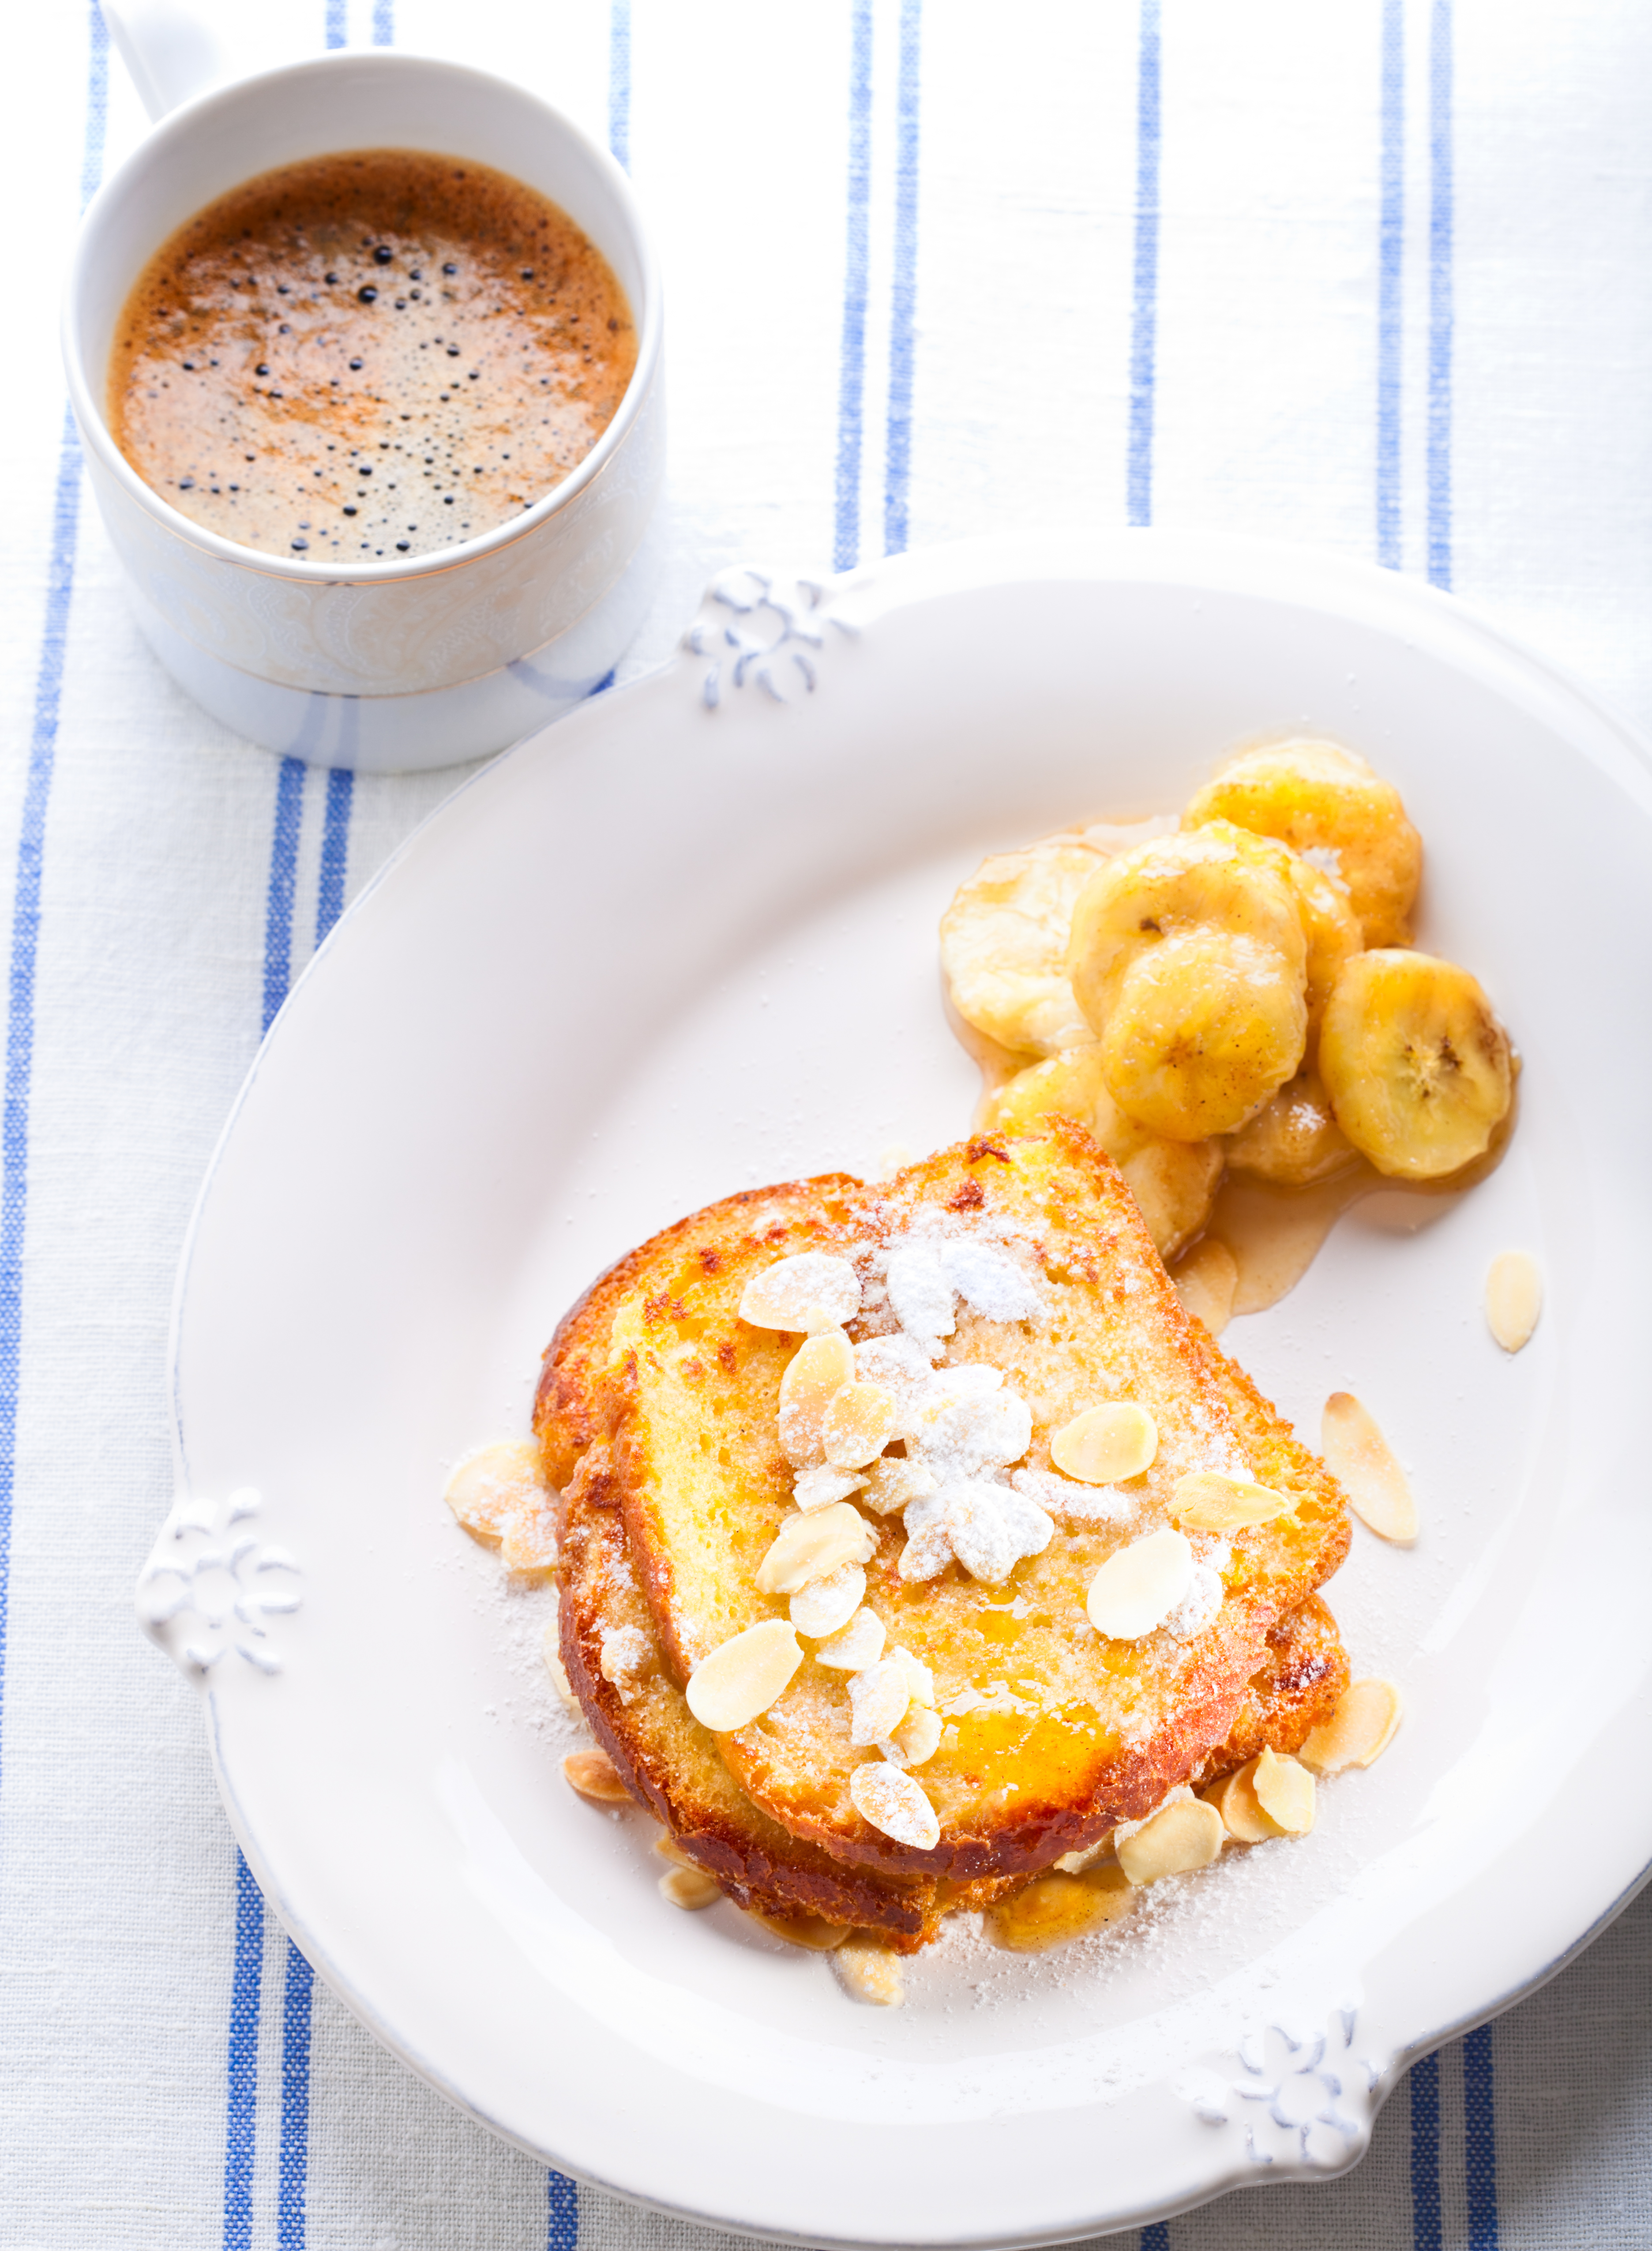 French toast  with bananas in caramel, nuts, powdered sugar and cup of coffee